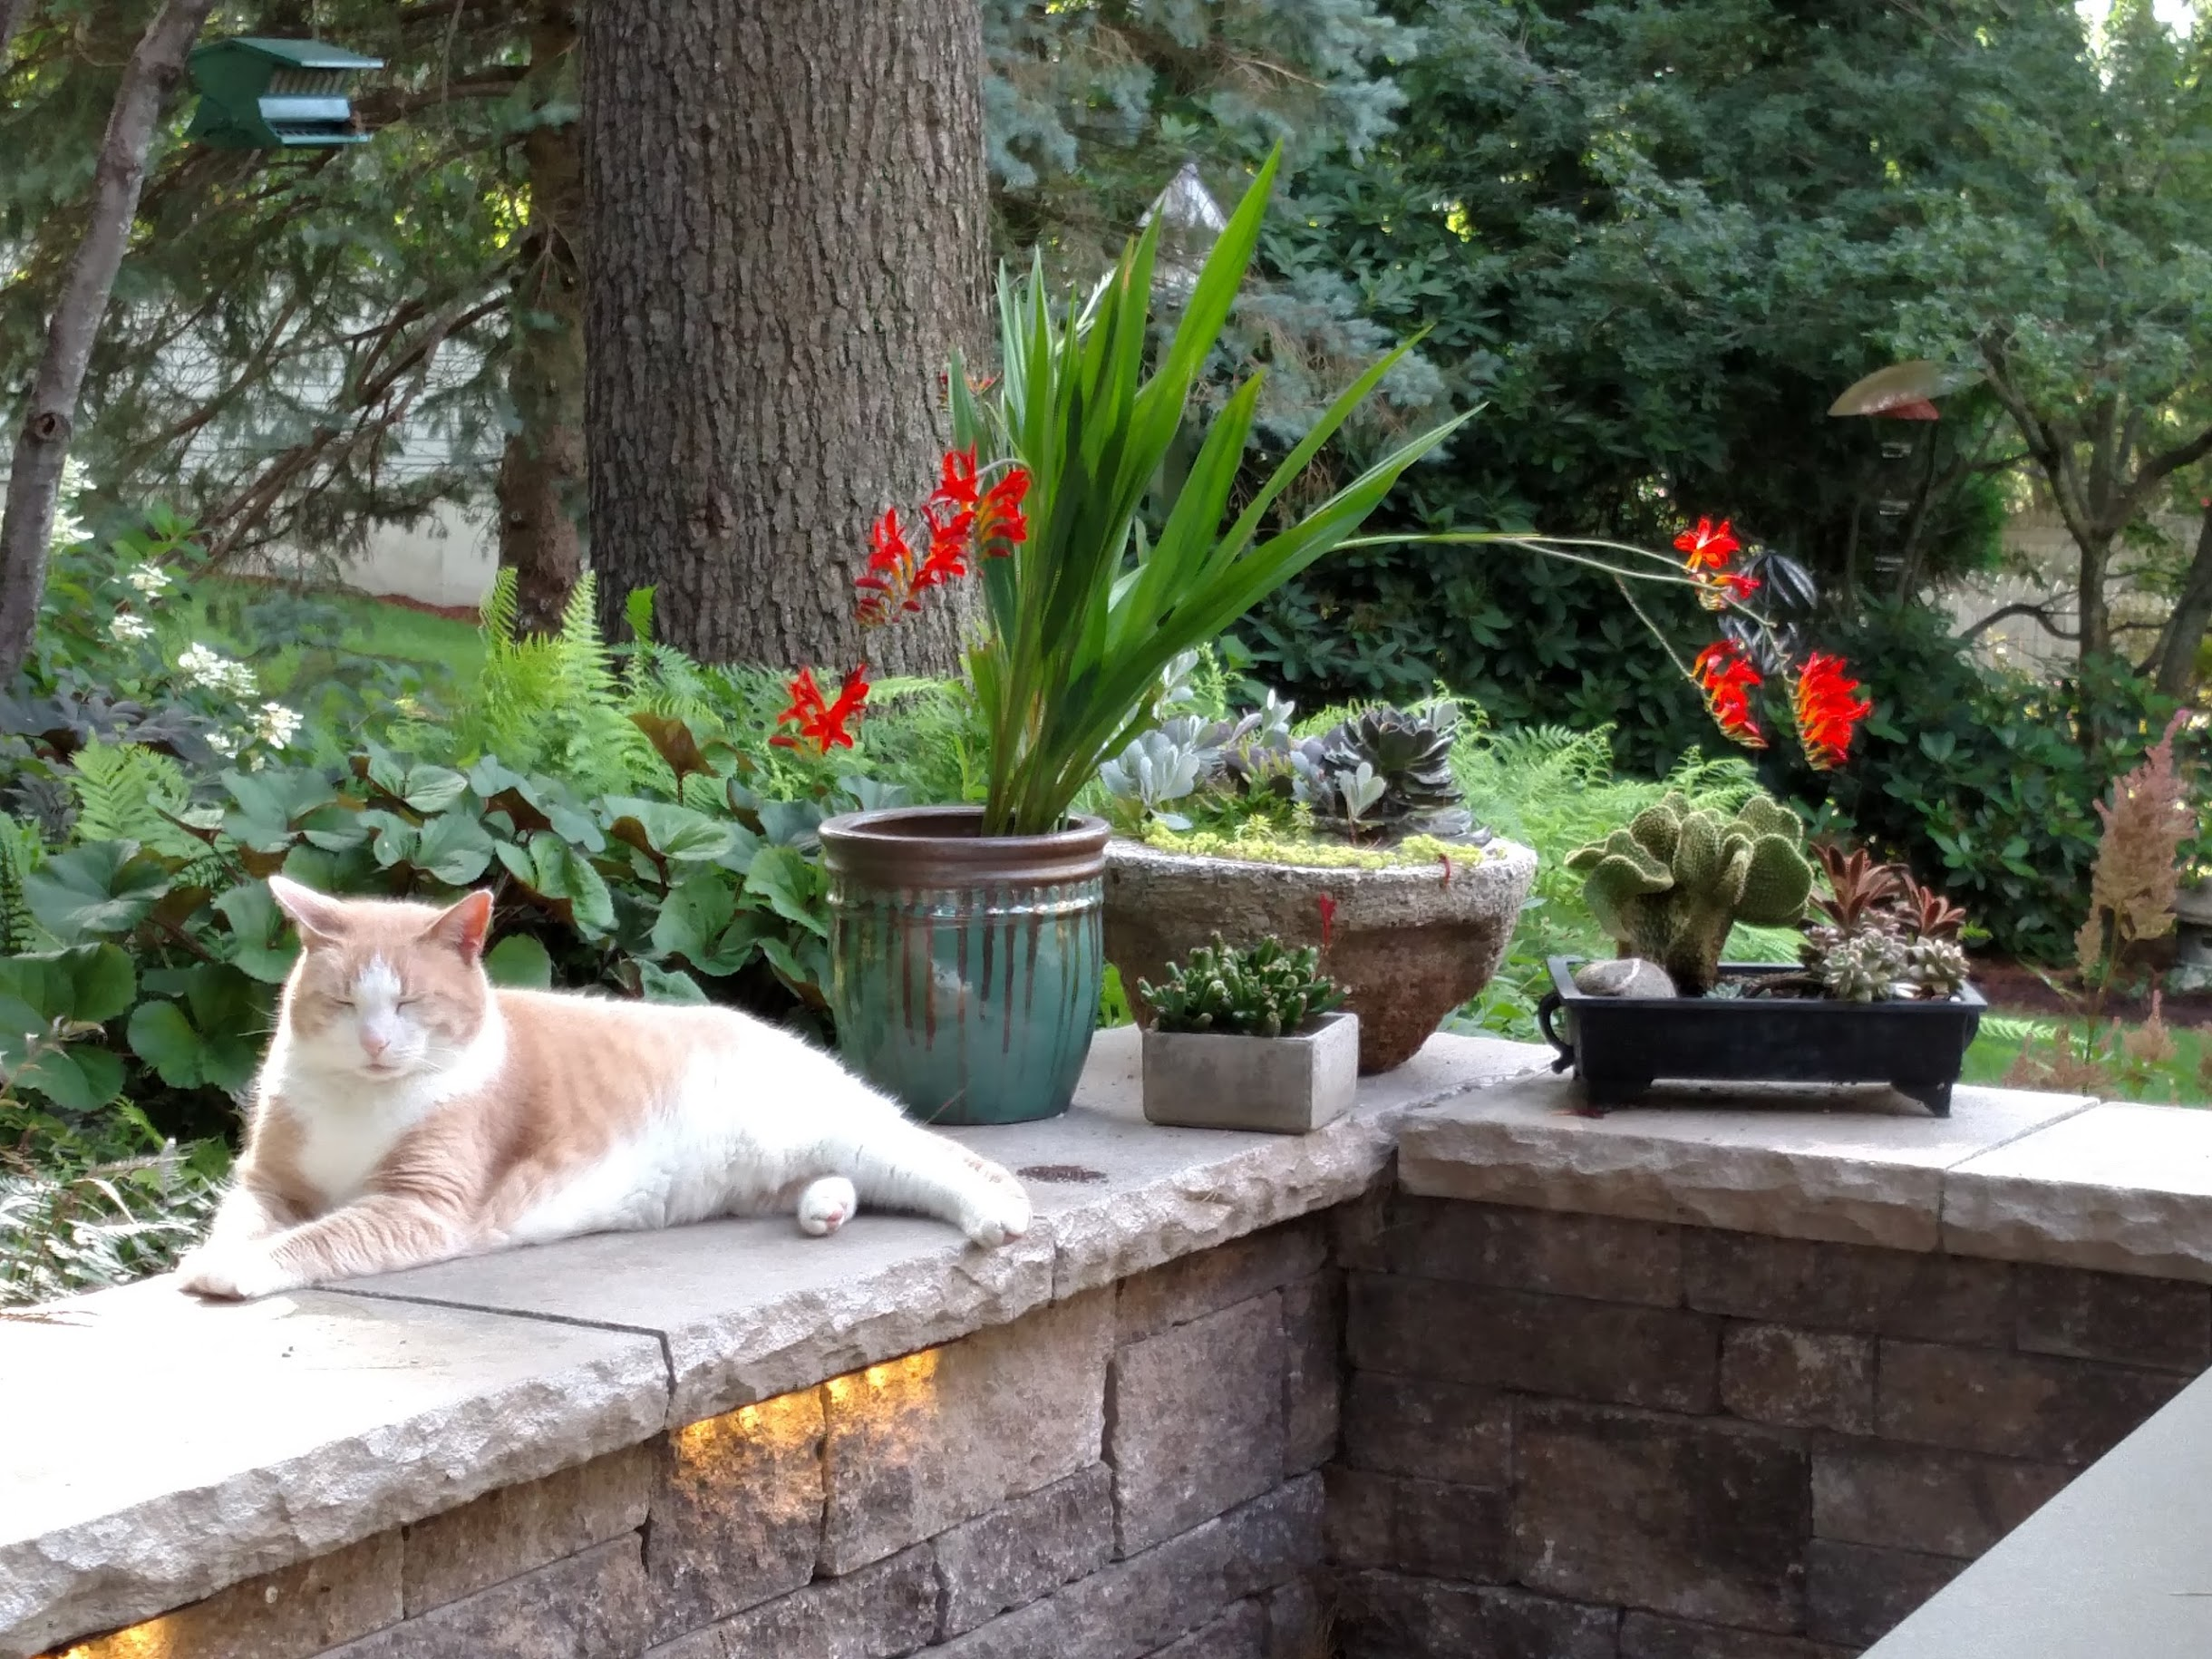 Harry the Cat in a serene moment with potted Crocosmia and succulents